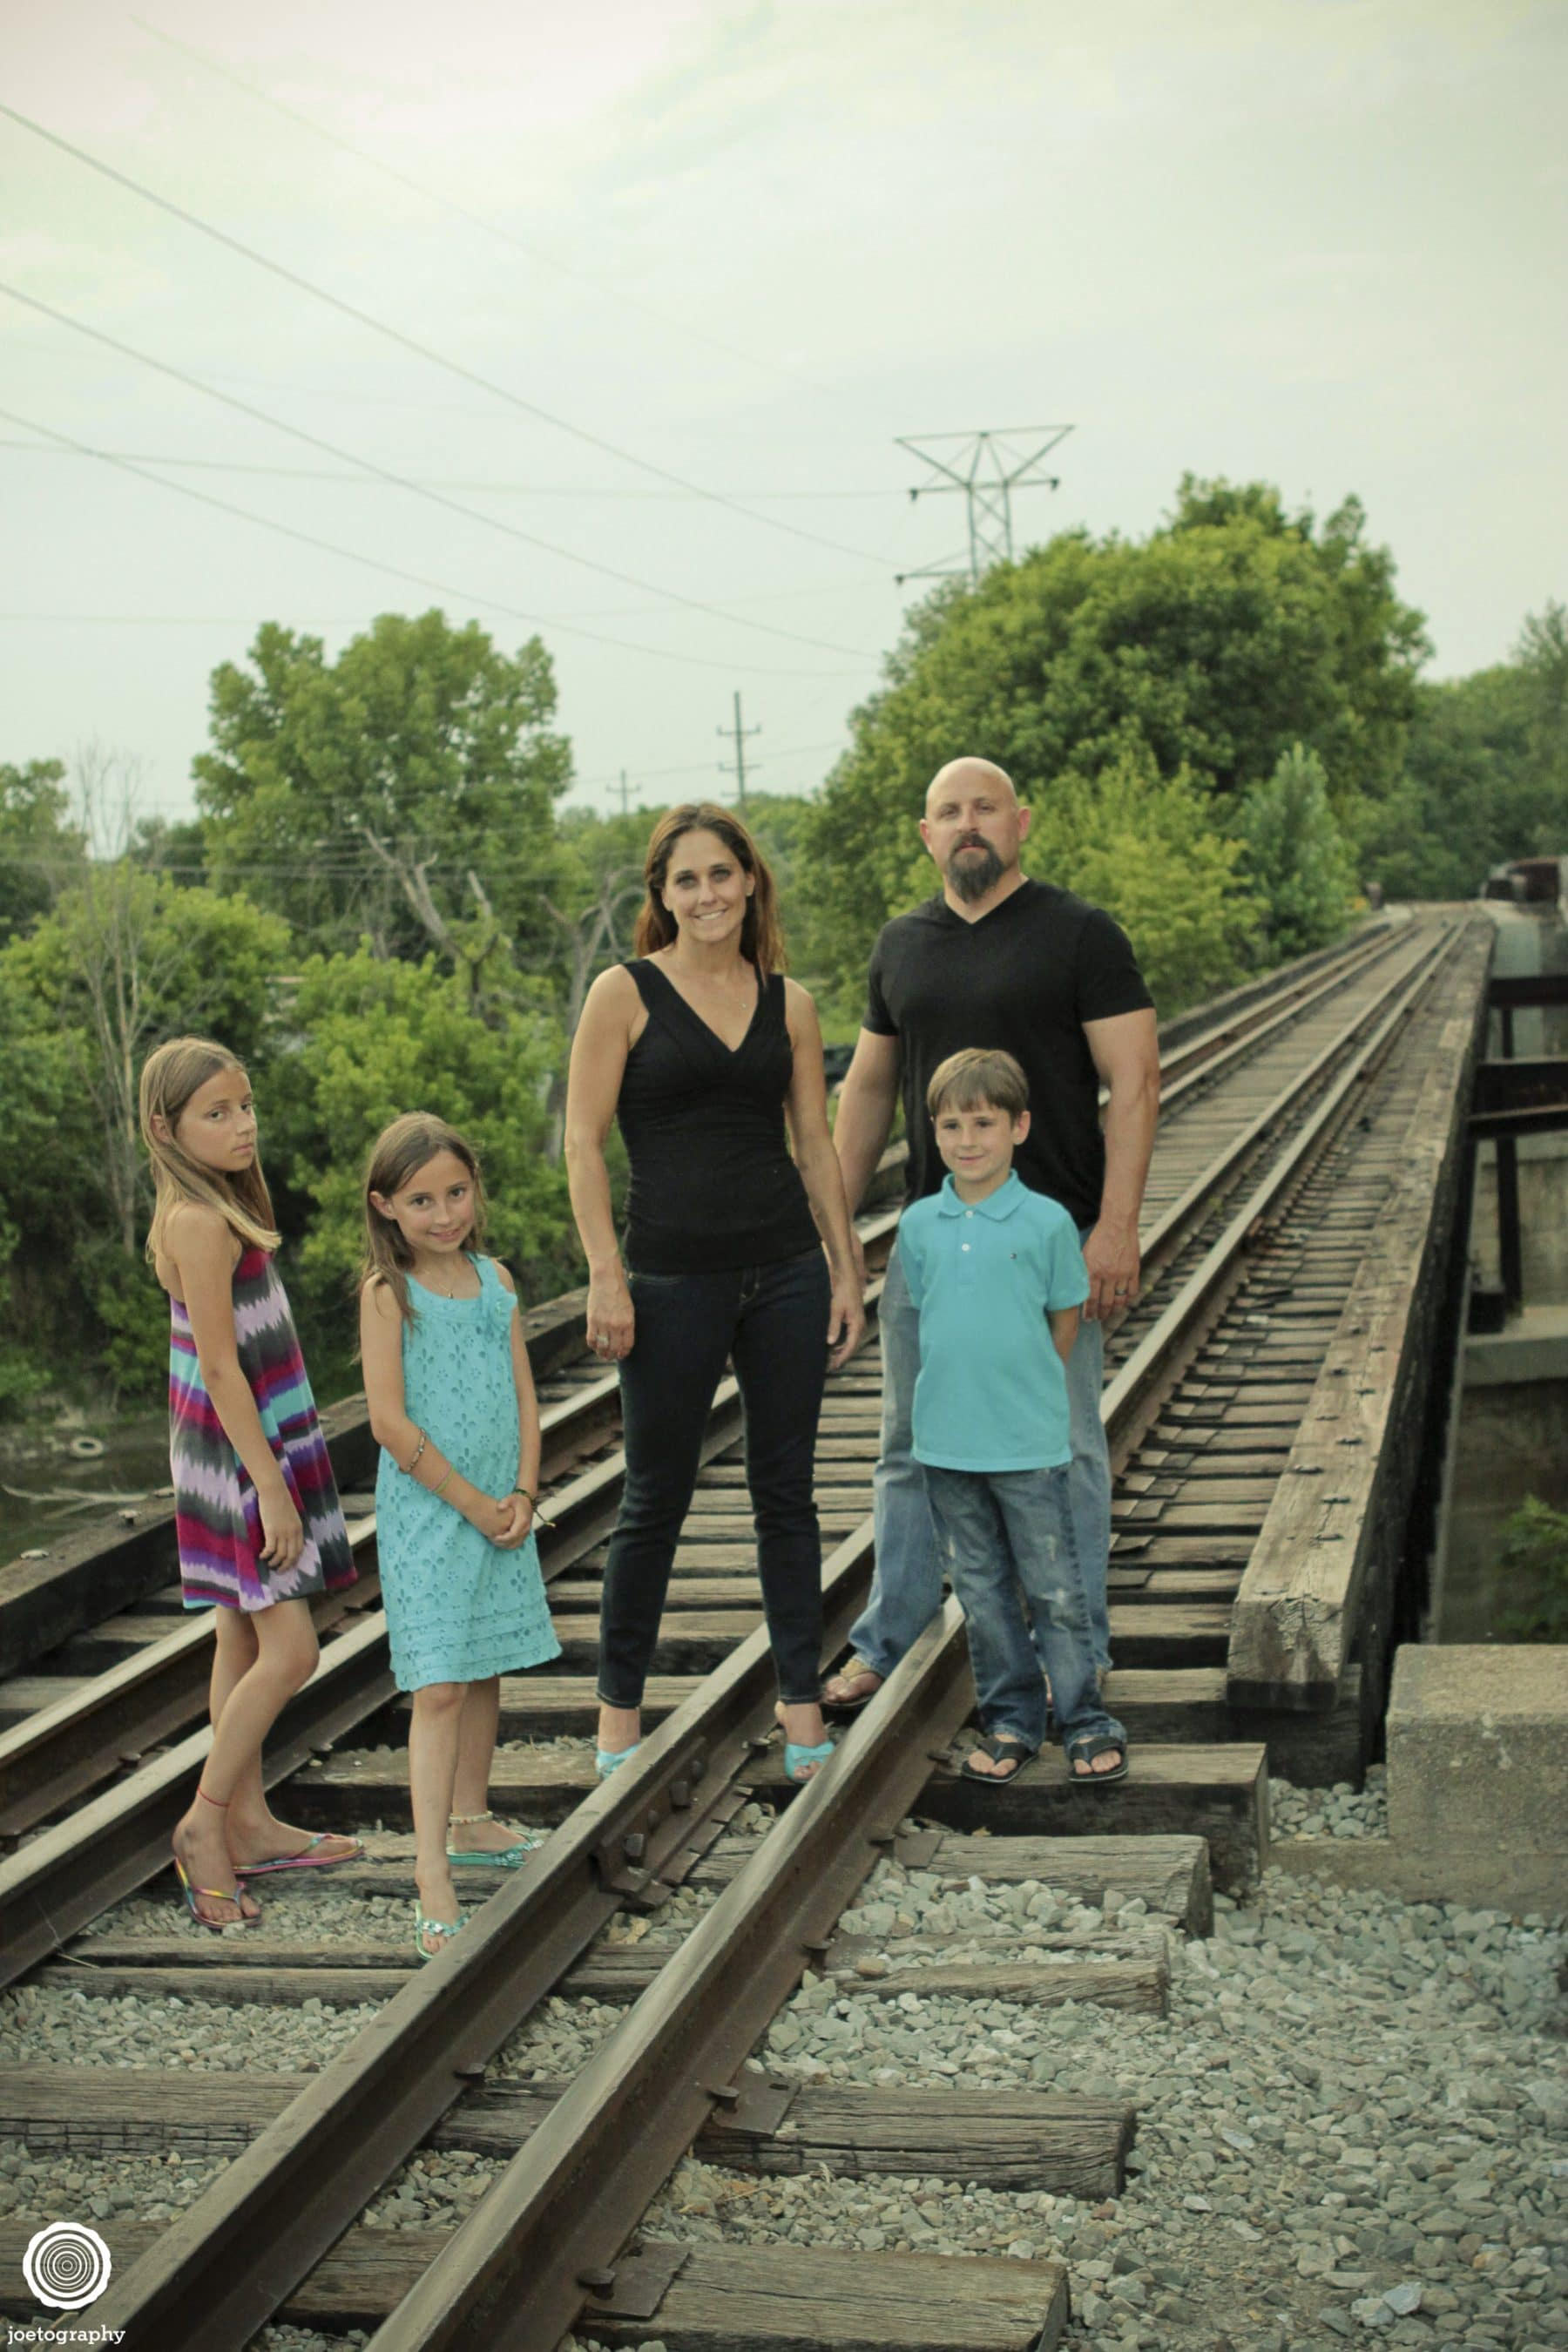 Schindler-Family-Photography-Noblesville-Indiana-72